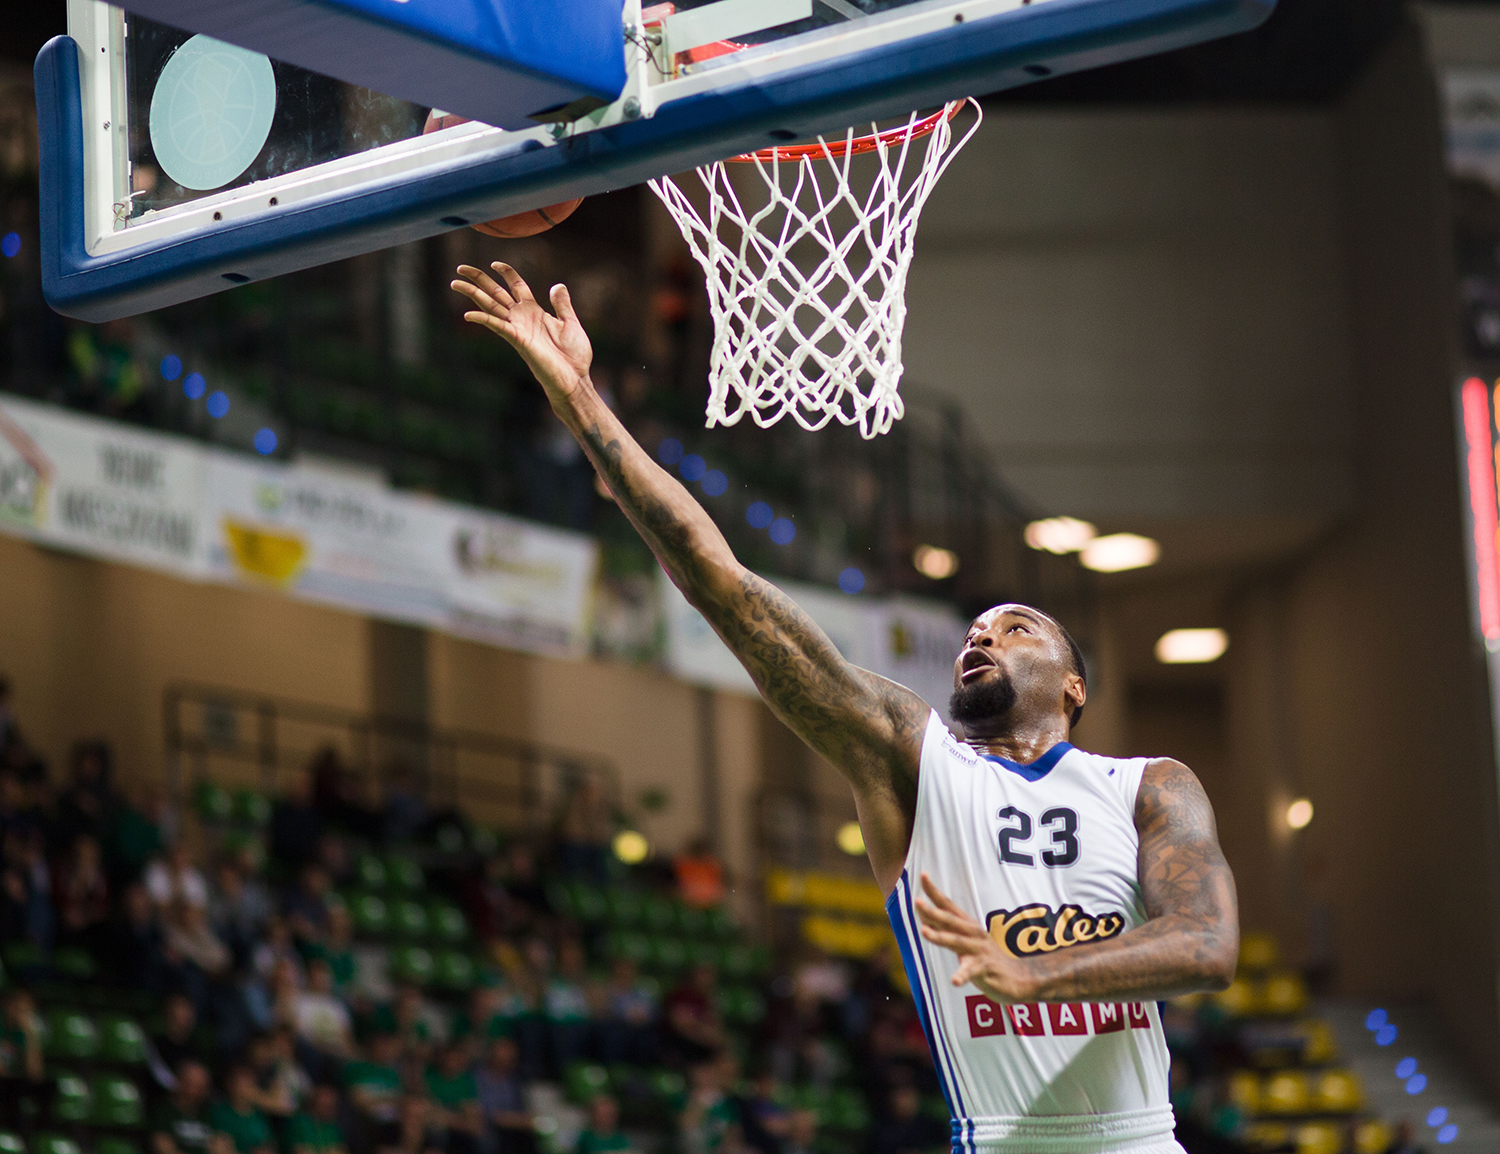 Kalev Sets Scoring Record, Inches Closer To Playoffs